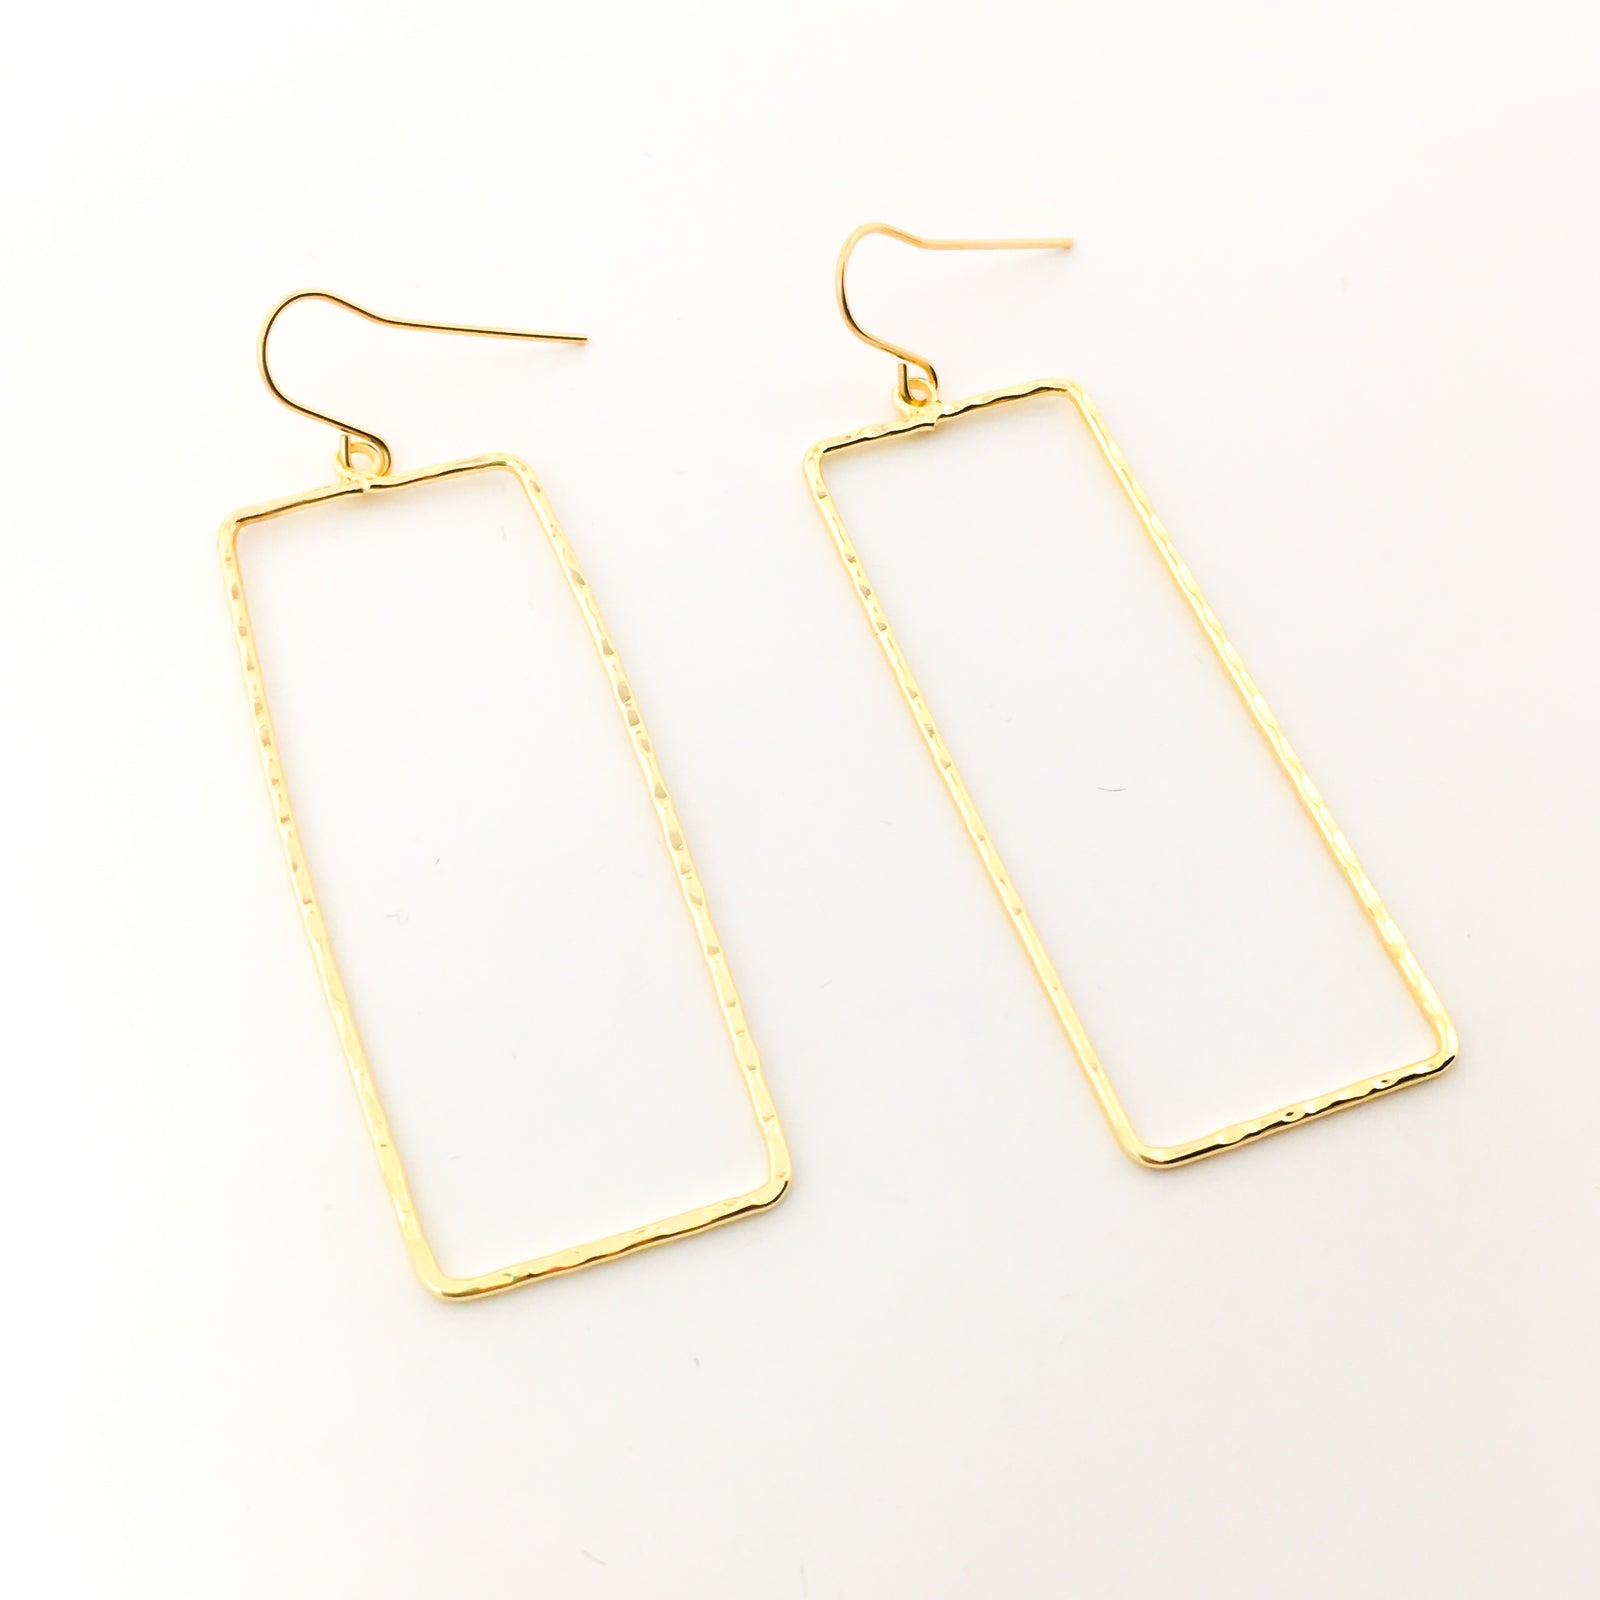 TWISTED HAMMERED RECTANGLE EARRINGS | 14K GOLD-FILLED